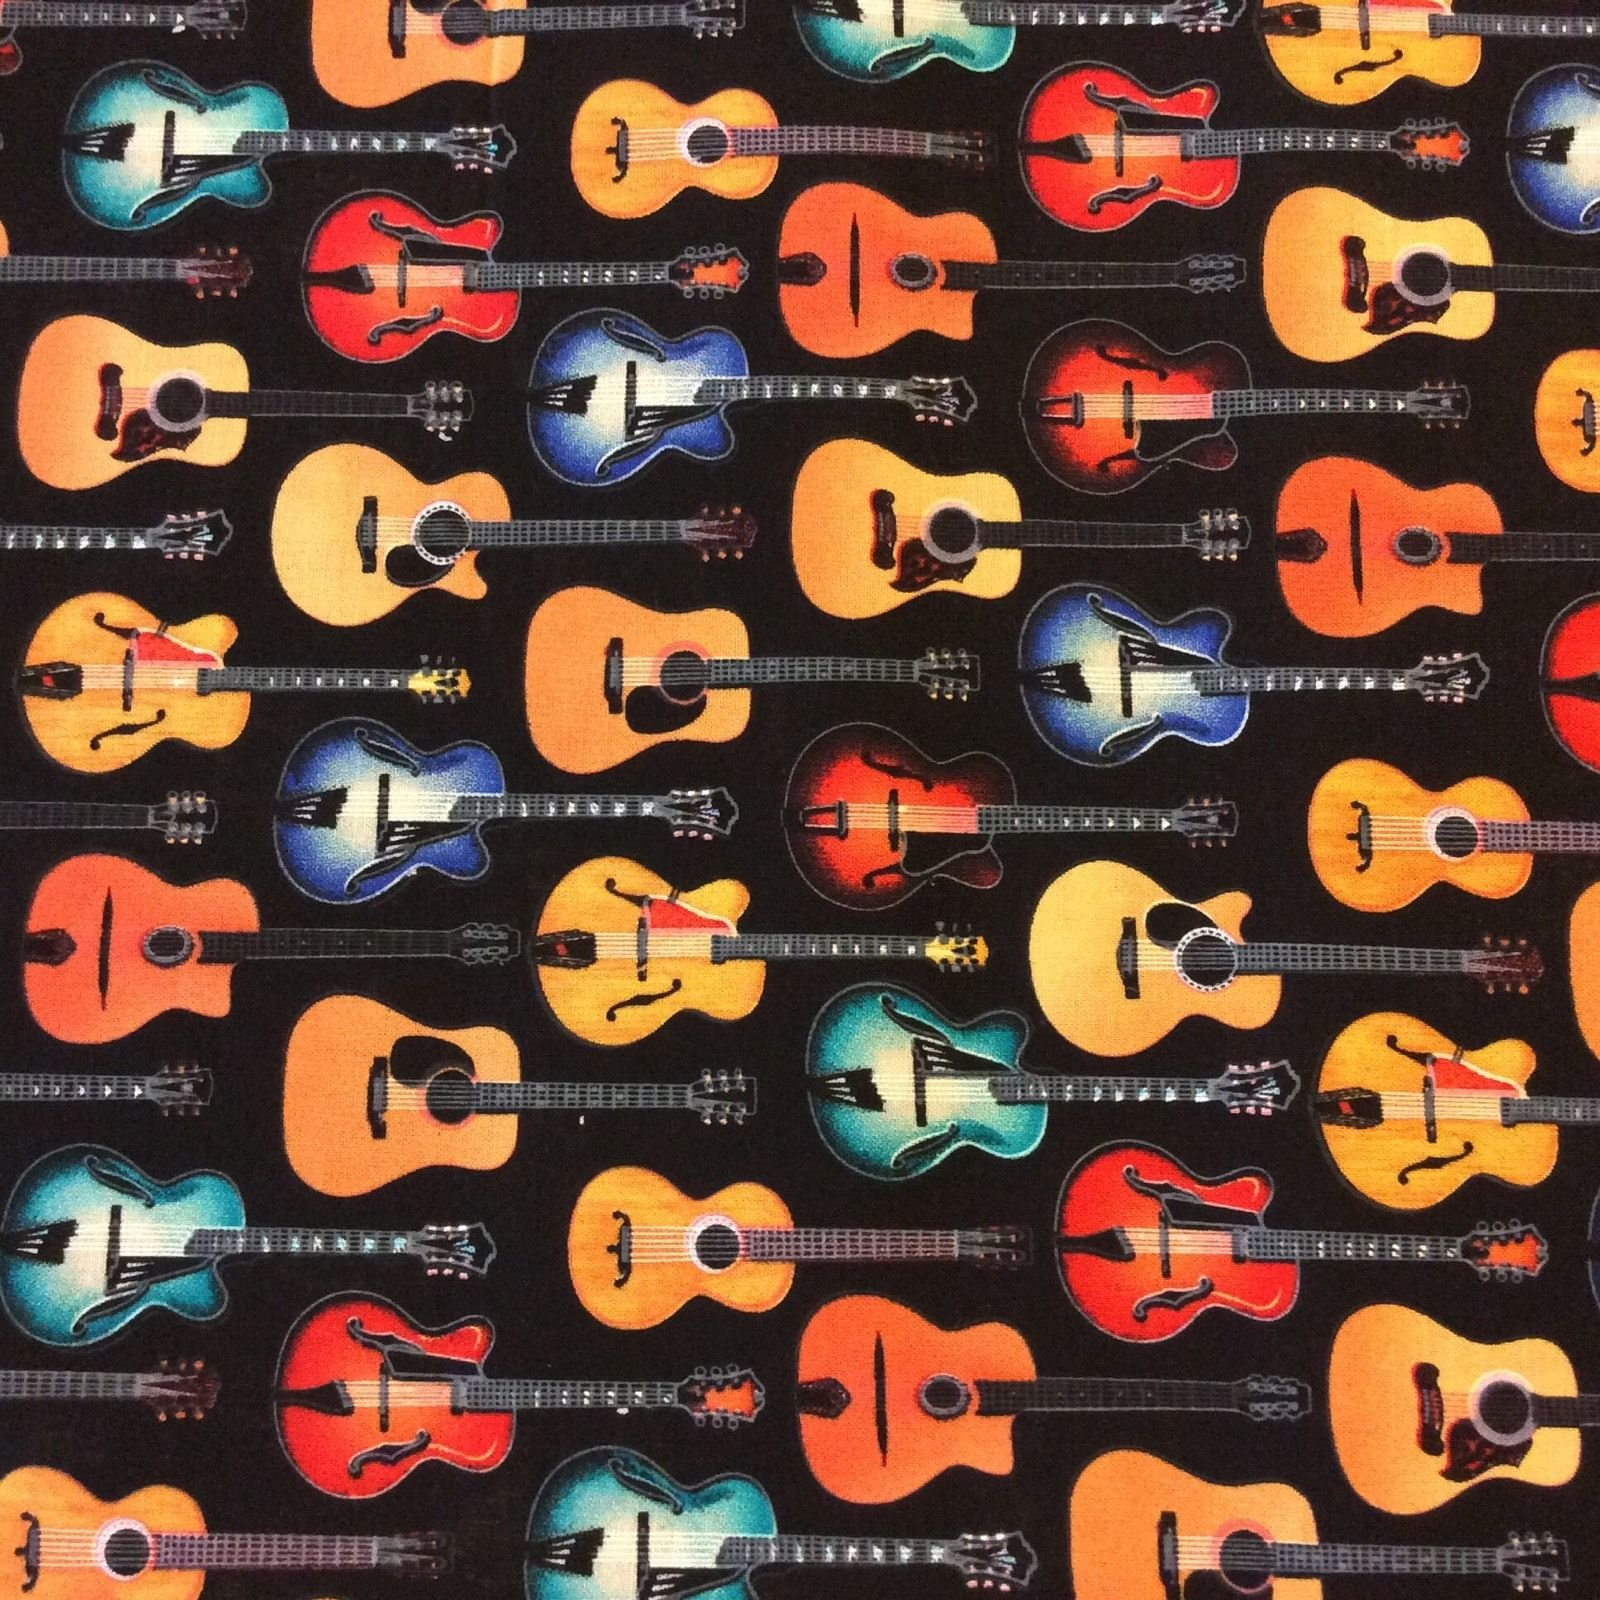 Hawaii Surf Tiki Bar MD281 Acoustic Electric Guitar Music Rock Country Band Cotton Quilt Fabric